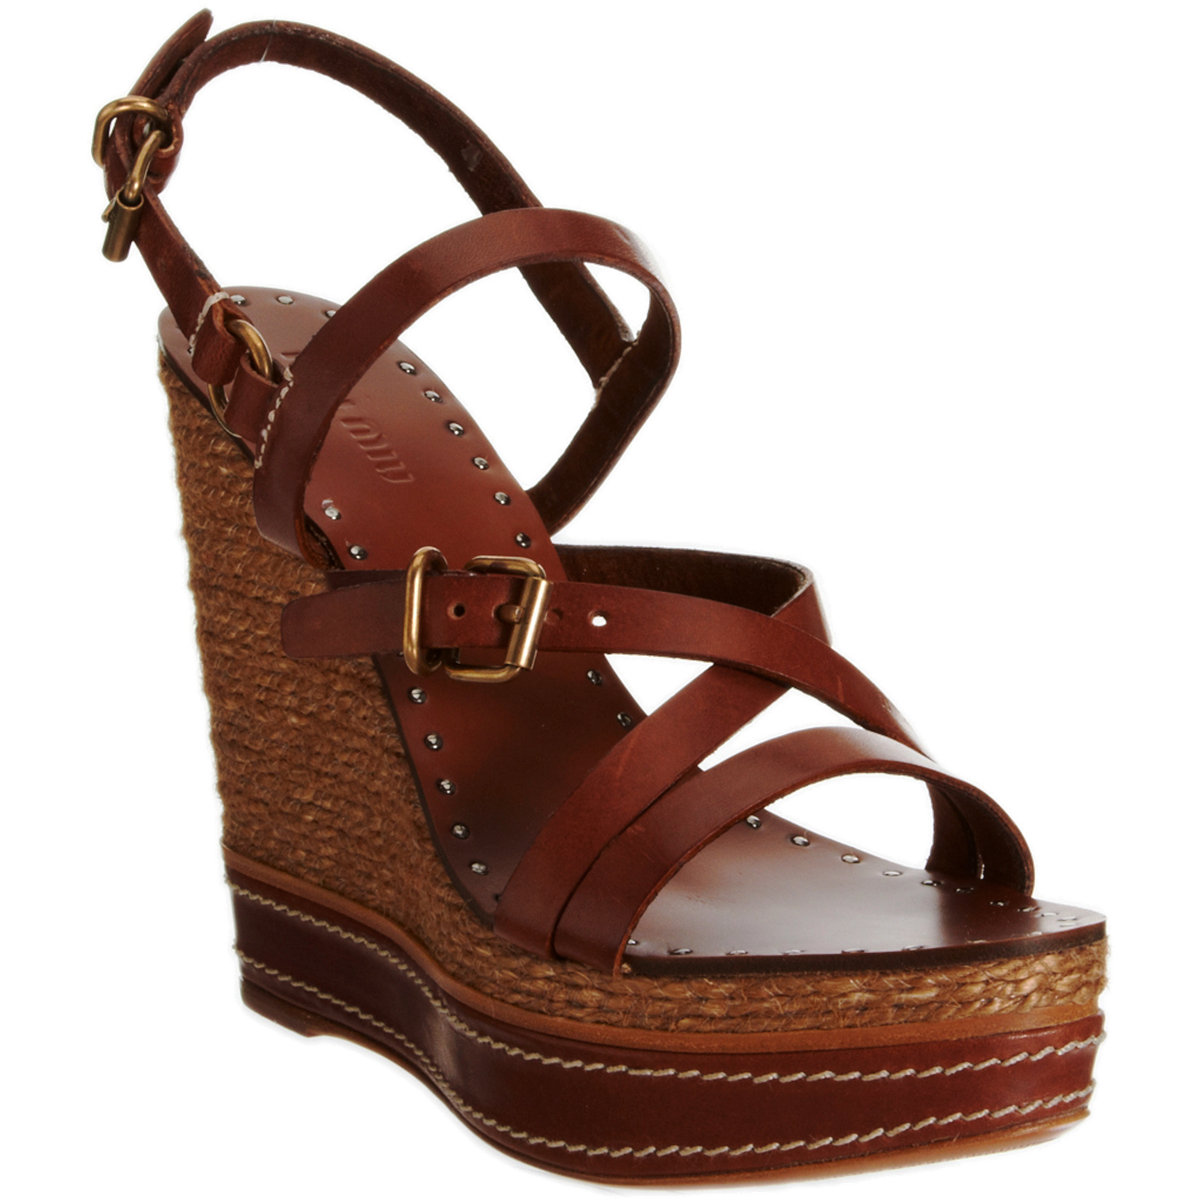 low price cheap price sale footlocker Miu Miu Leather Platform Wedges cheap real authentic 2015 cheap online OmWKlRe4F